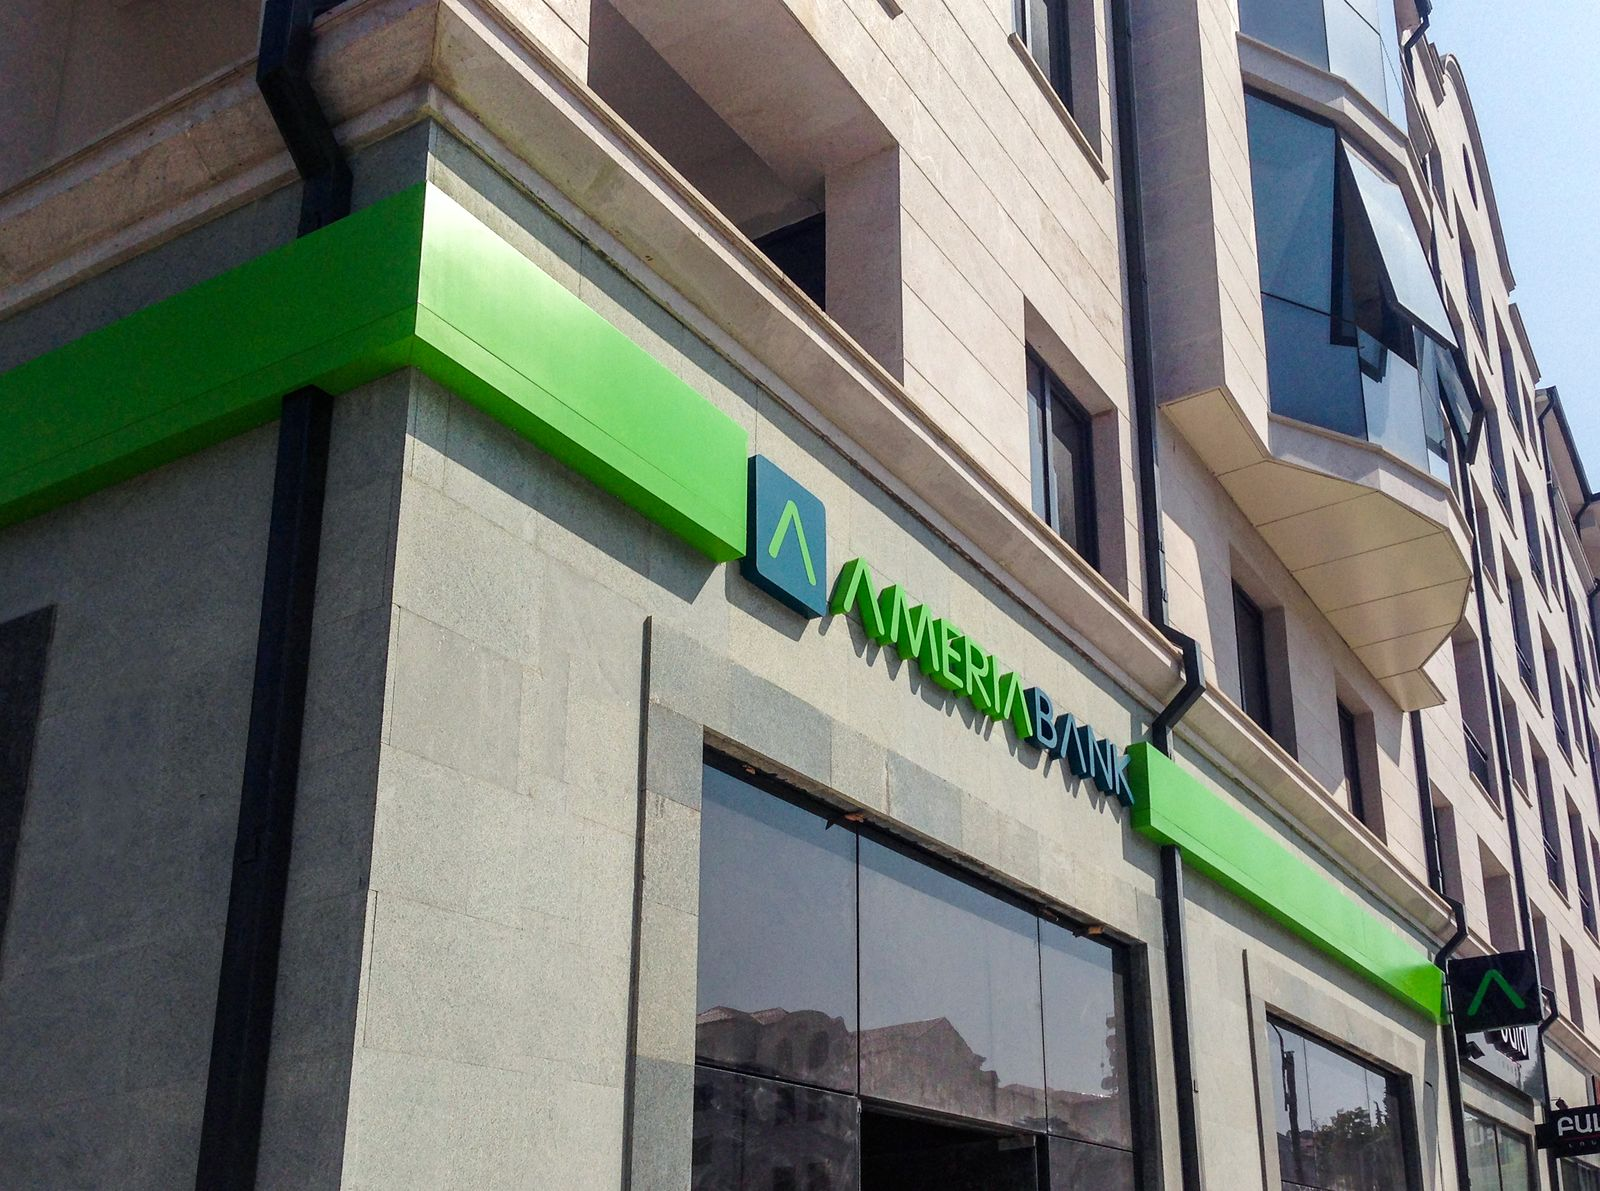 Ameriabank 3d acrylic letters and logo sign with modern style green and blue colors for bank exterior branding